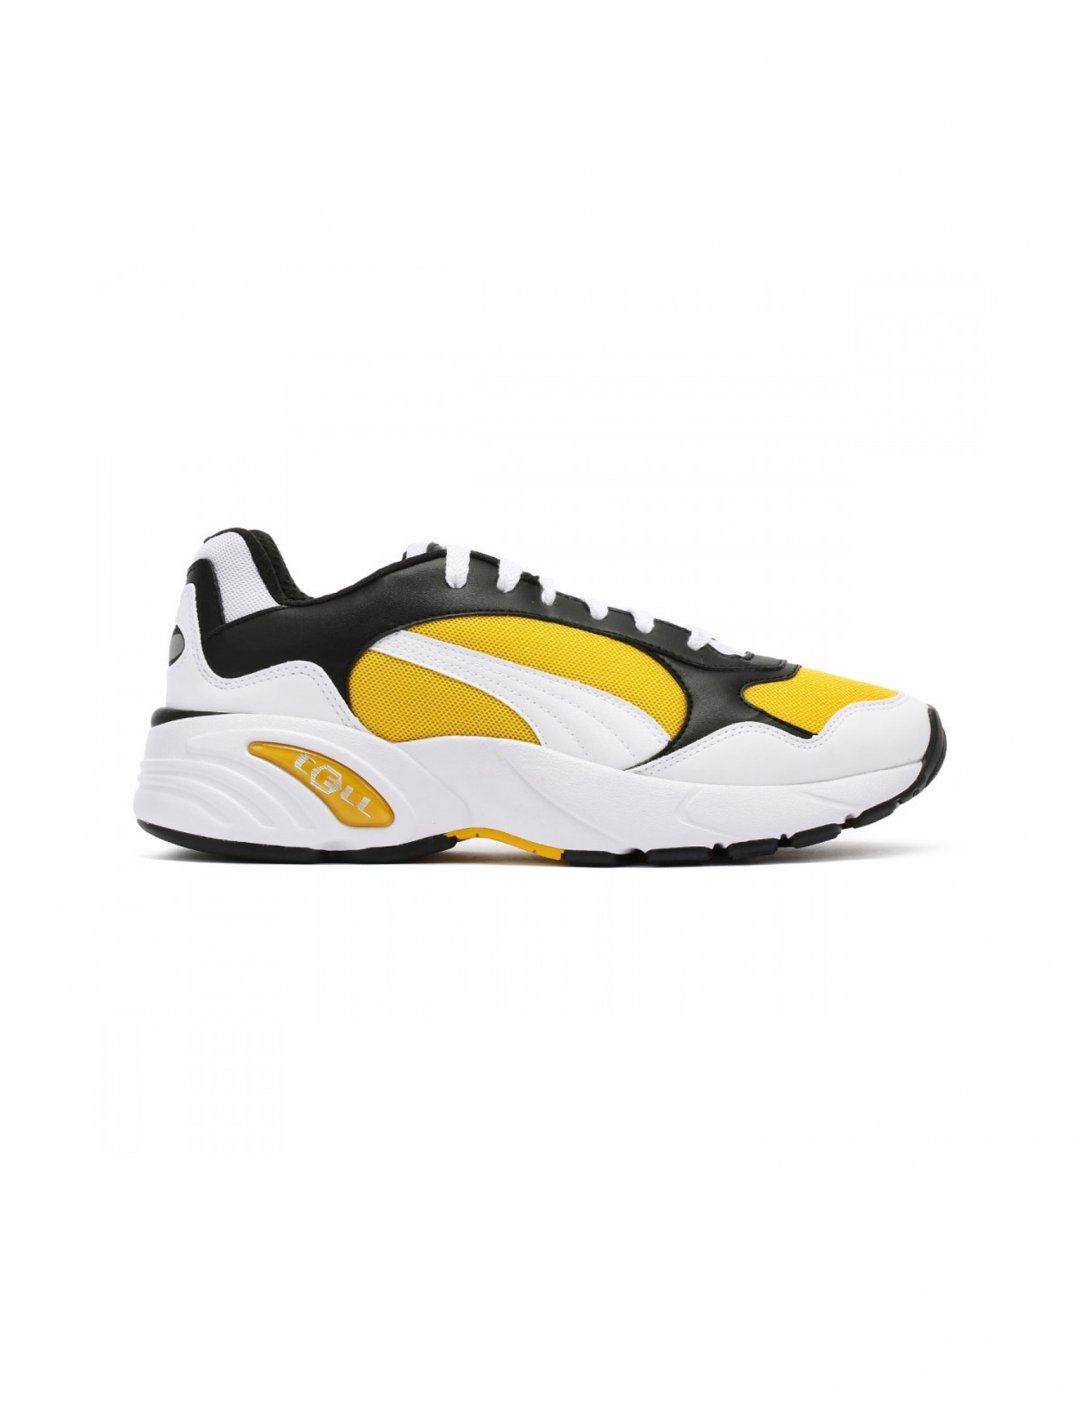 Myles' Trainers Shoes Puma